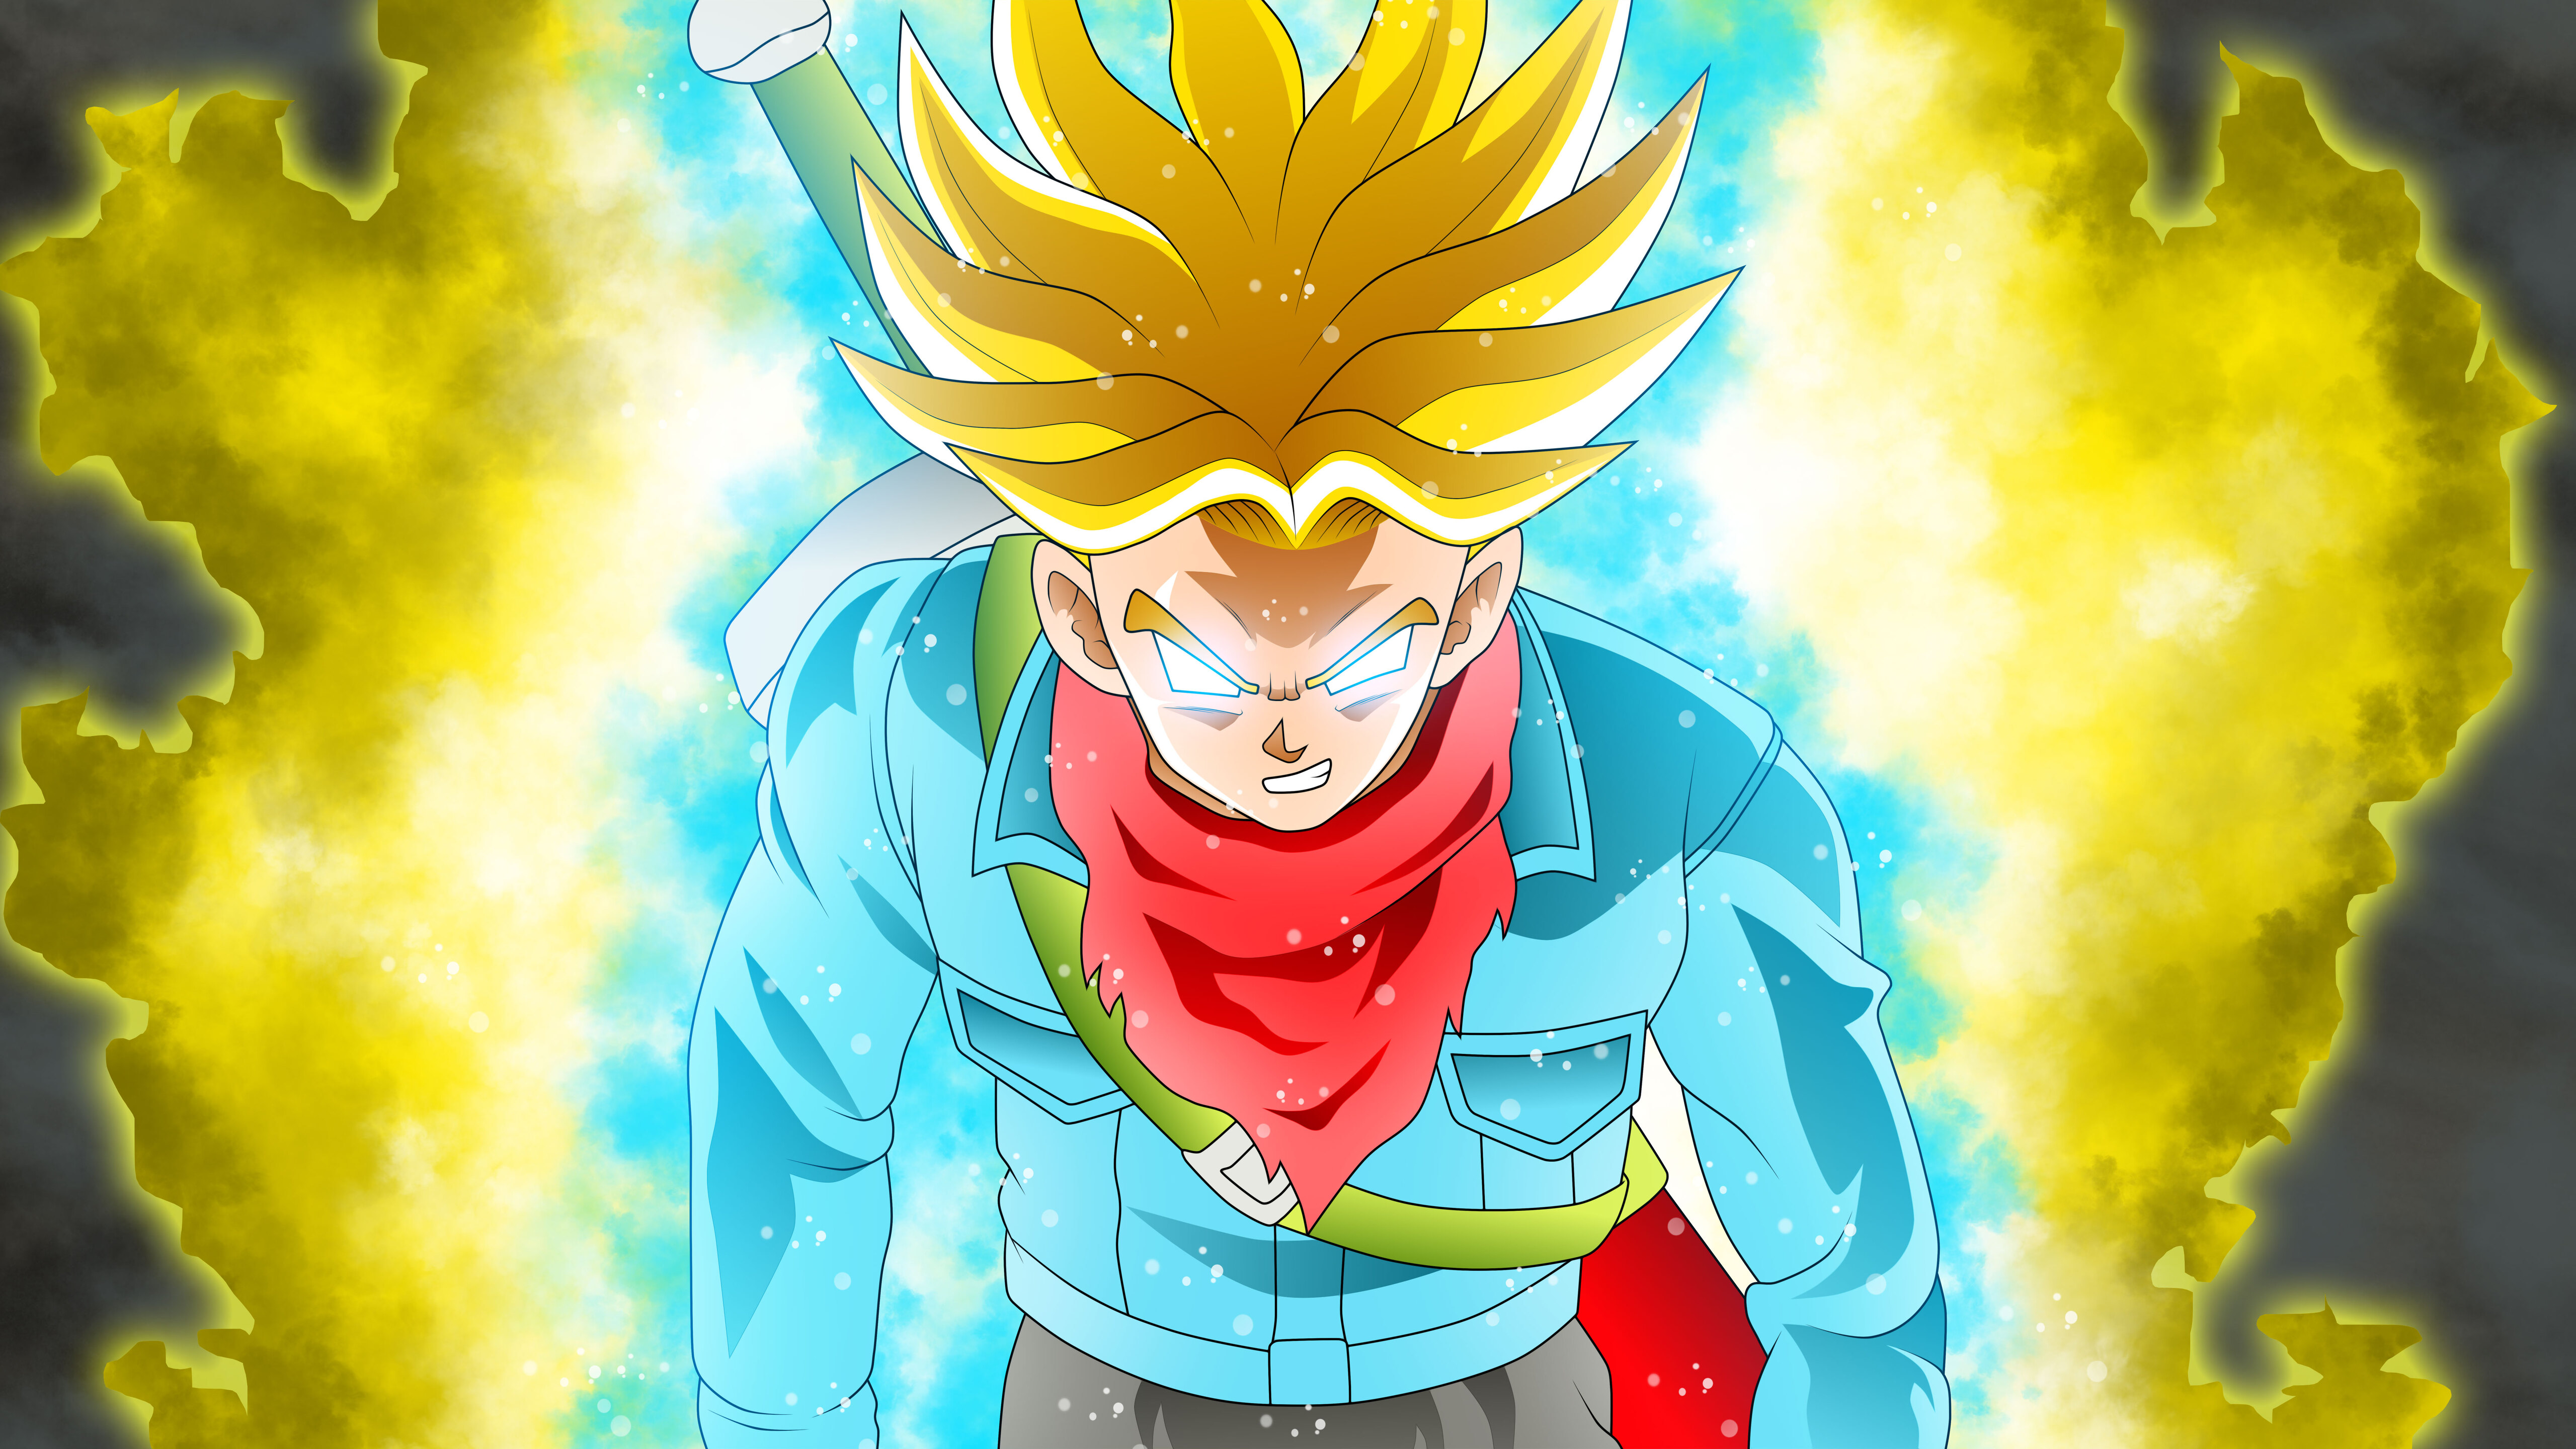 5120x2880 Trunks Dragon Ball Super 5k Hd 4k Wallpapers Images